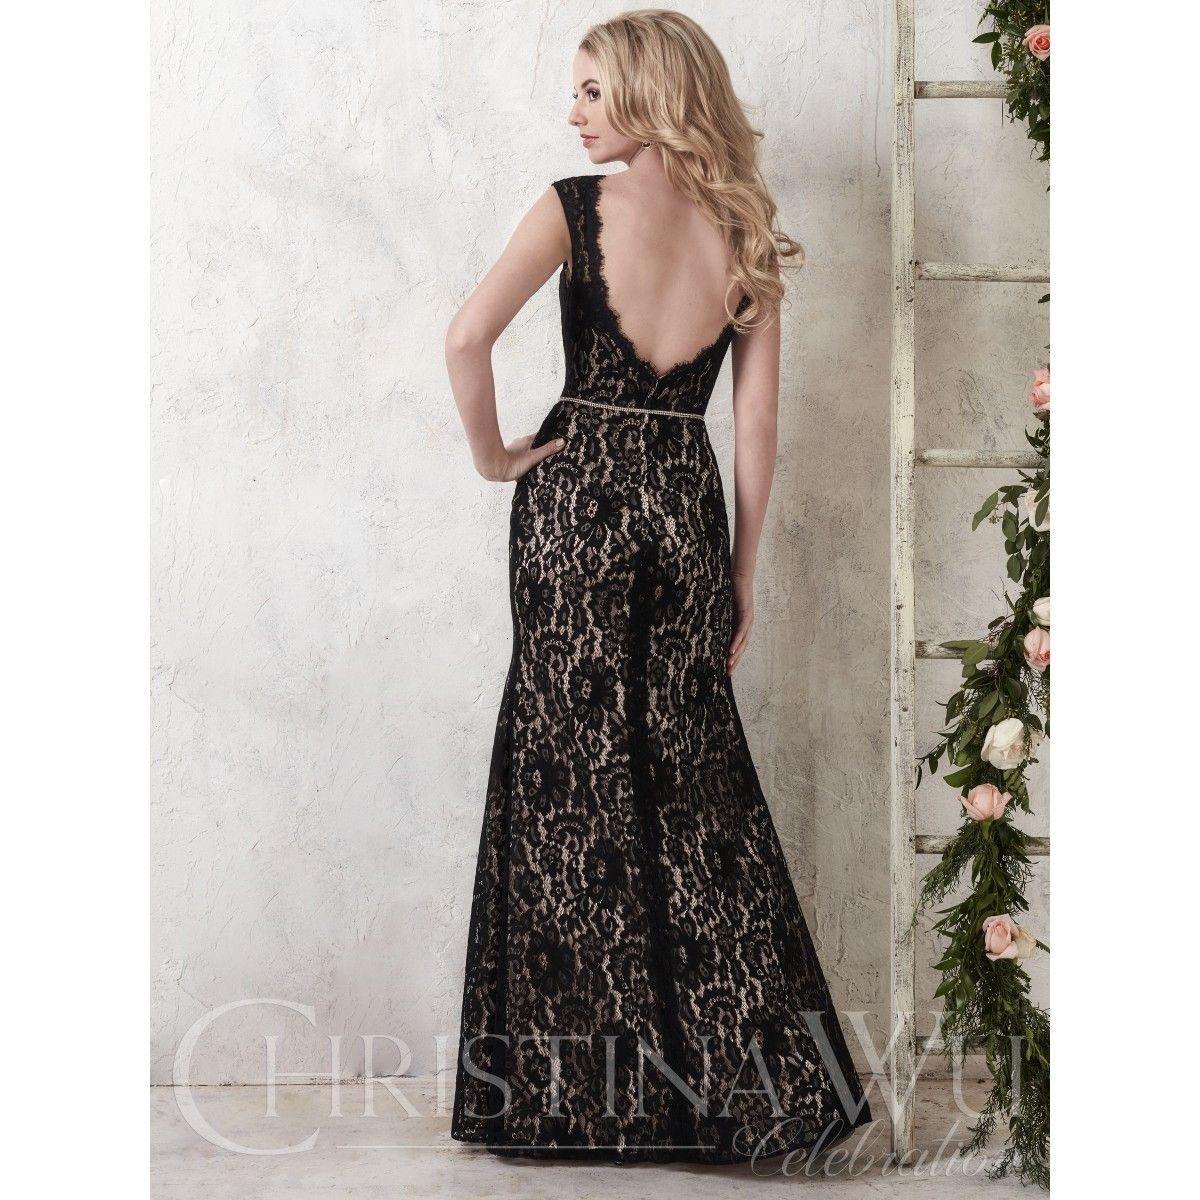 (IV3157) Lace Fit & Flare Bridesmaid Style w/Dramatic Open Back & Audrey Neckline. Beautiful Style For Your Bridesmaids, Equally Stunning In Light Colors As an Informal Wedding Gown or Reception Dress.